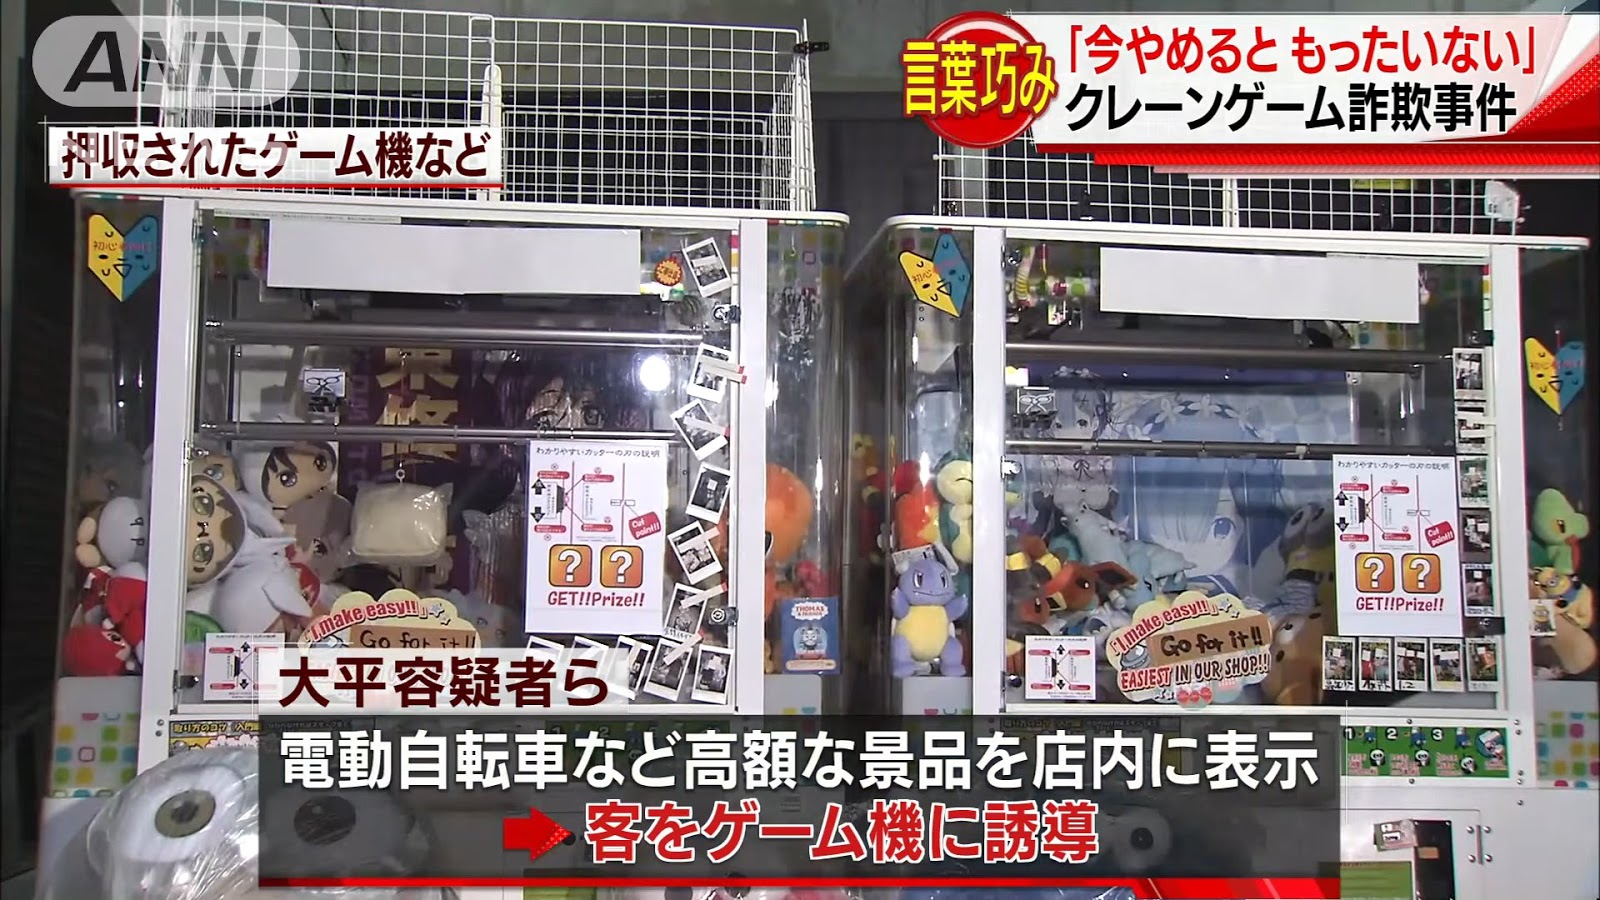 A game arcade operator in Japan has taken it to the extremes. it's an open secret that most of these machines are rigged.